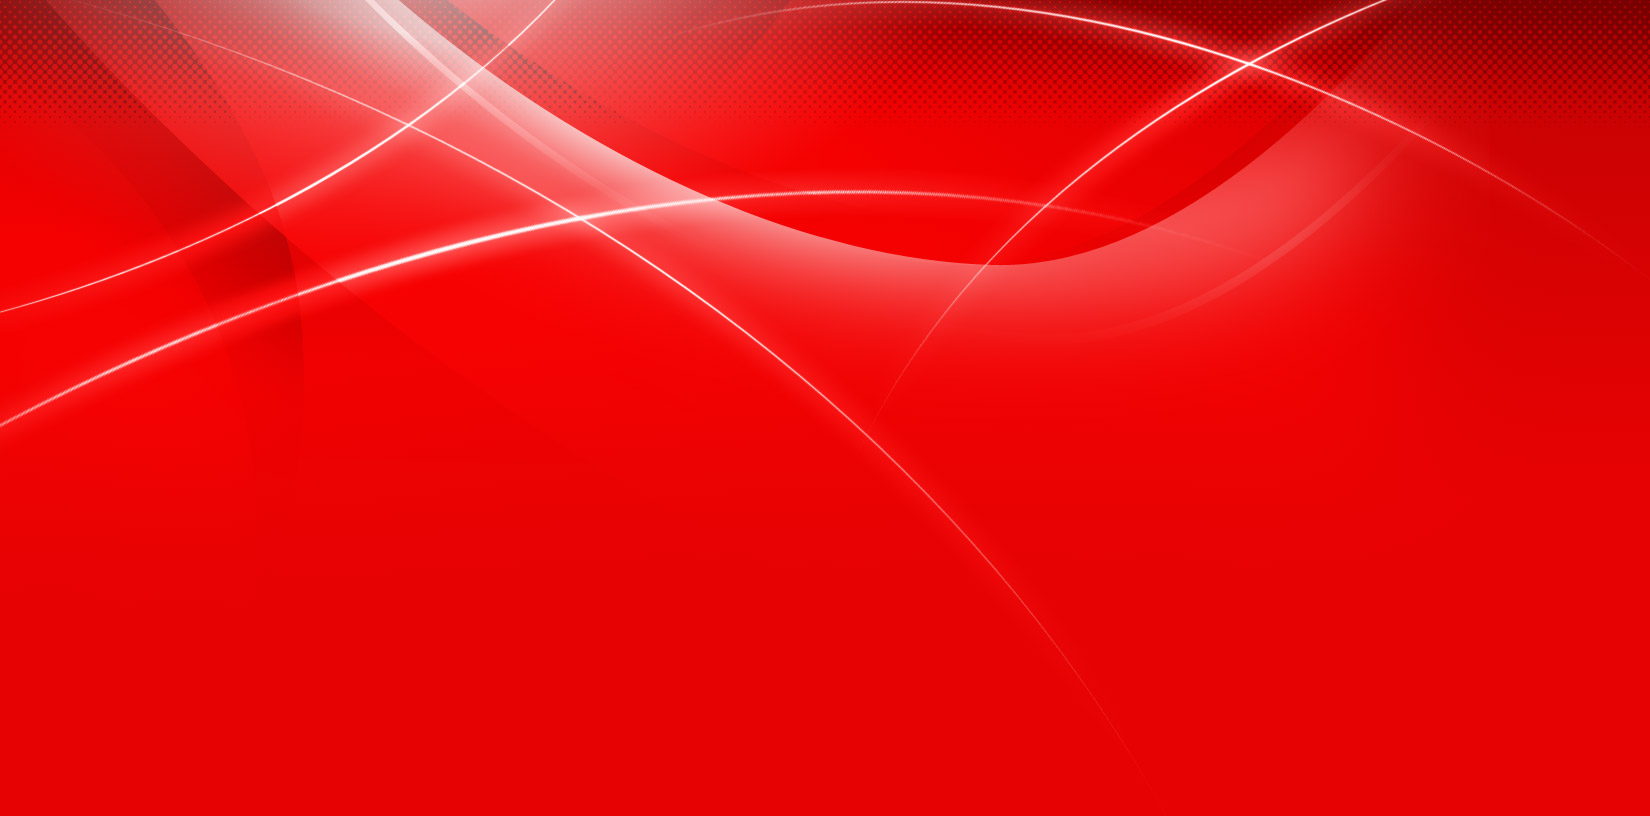 red background badger state web services wisconsin web design